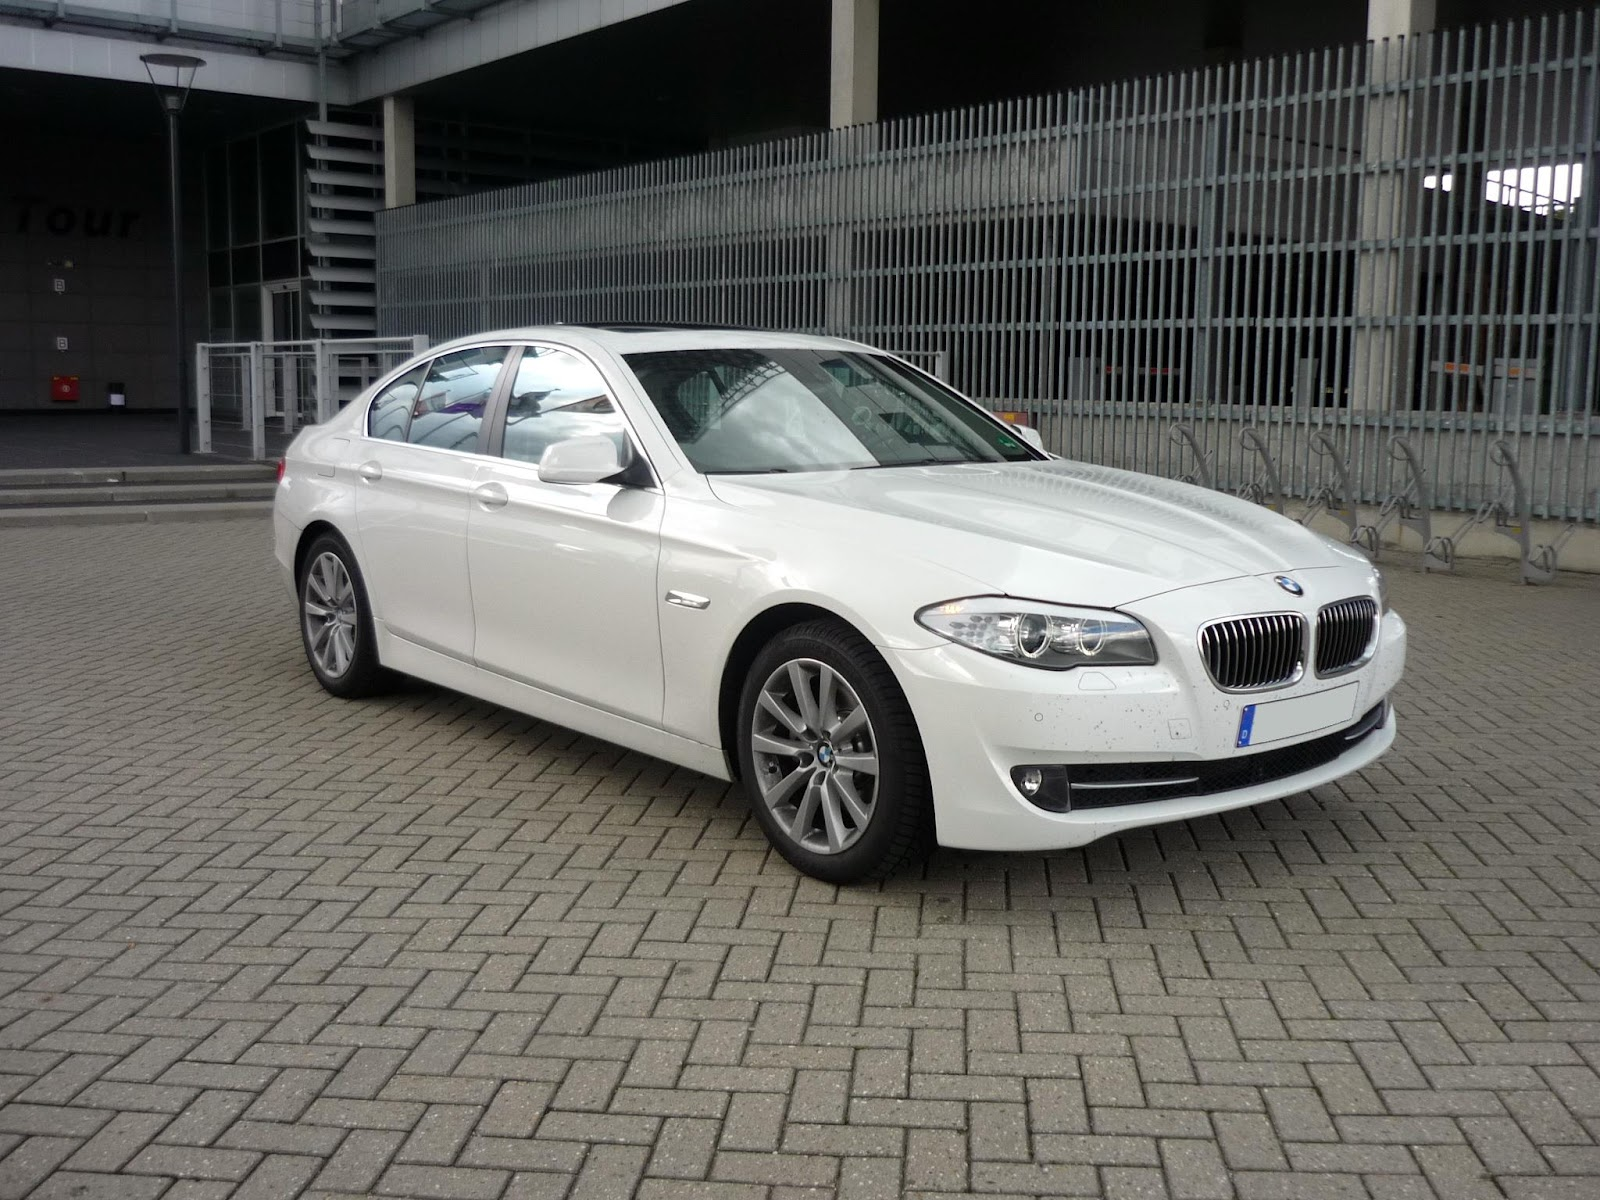 guitigefilmpjes car review bmw 520d f10